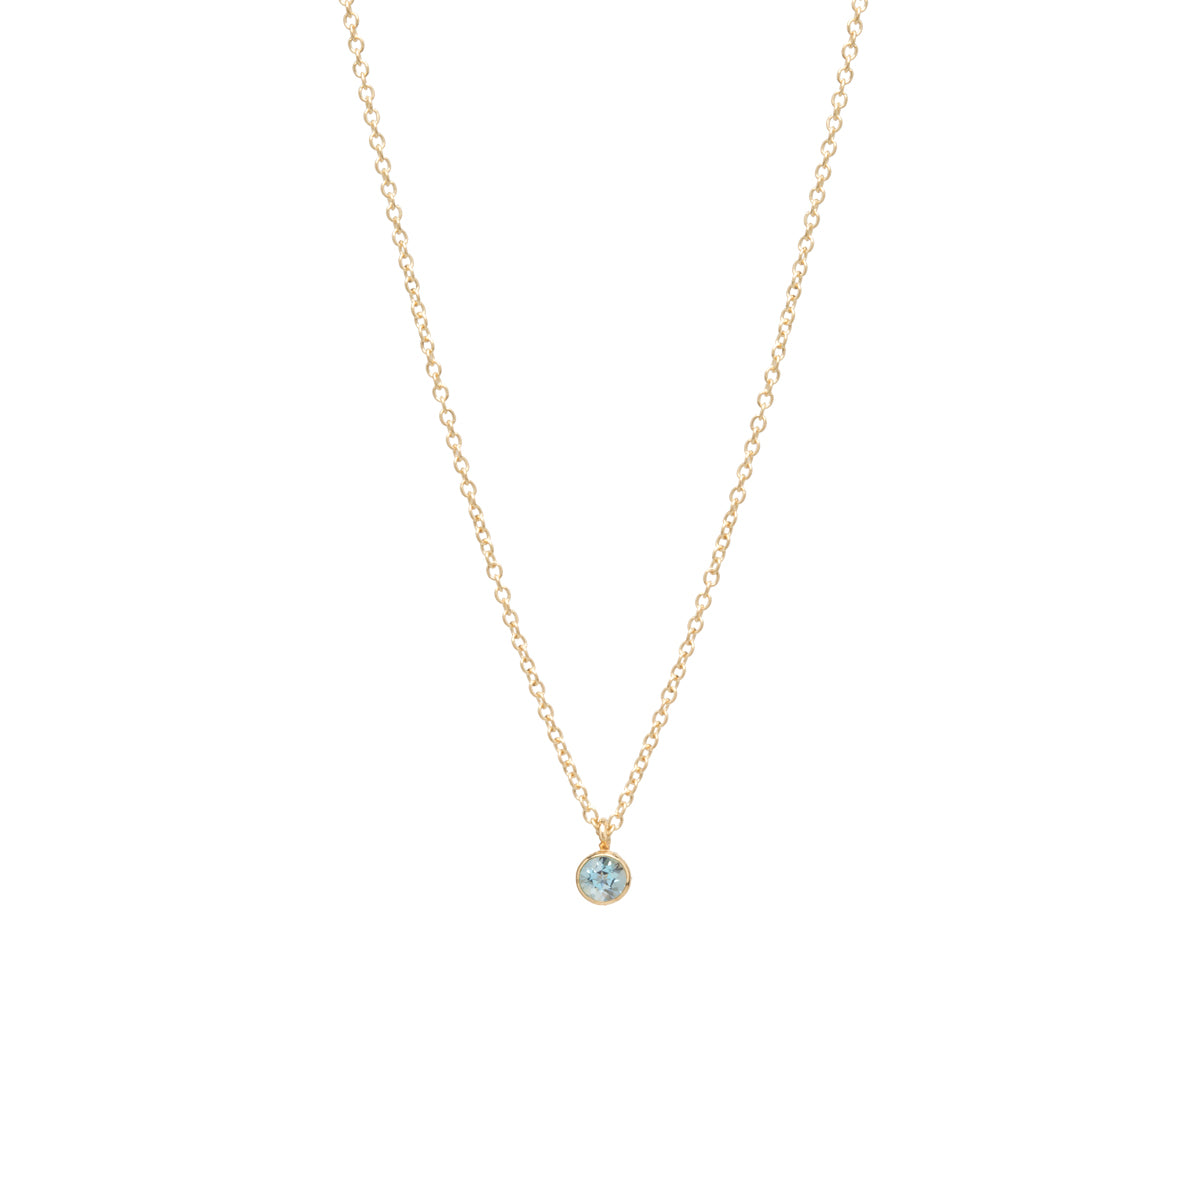 14k single aquamarine choker pendant necklace | March BIRTHSTONE